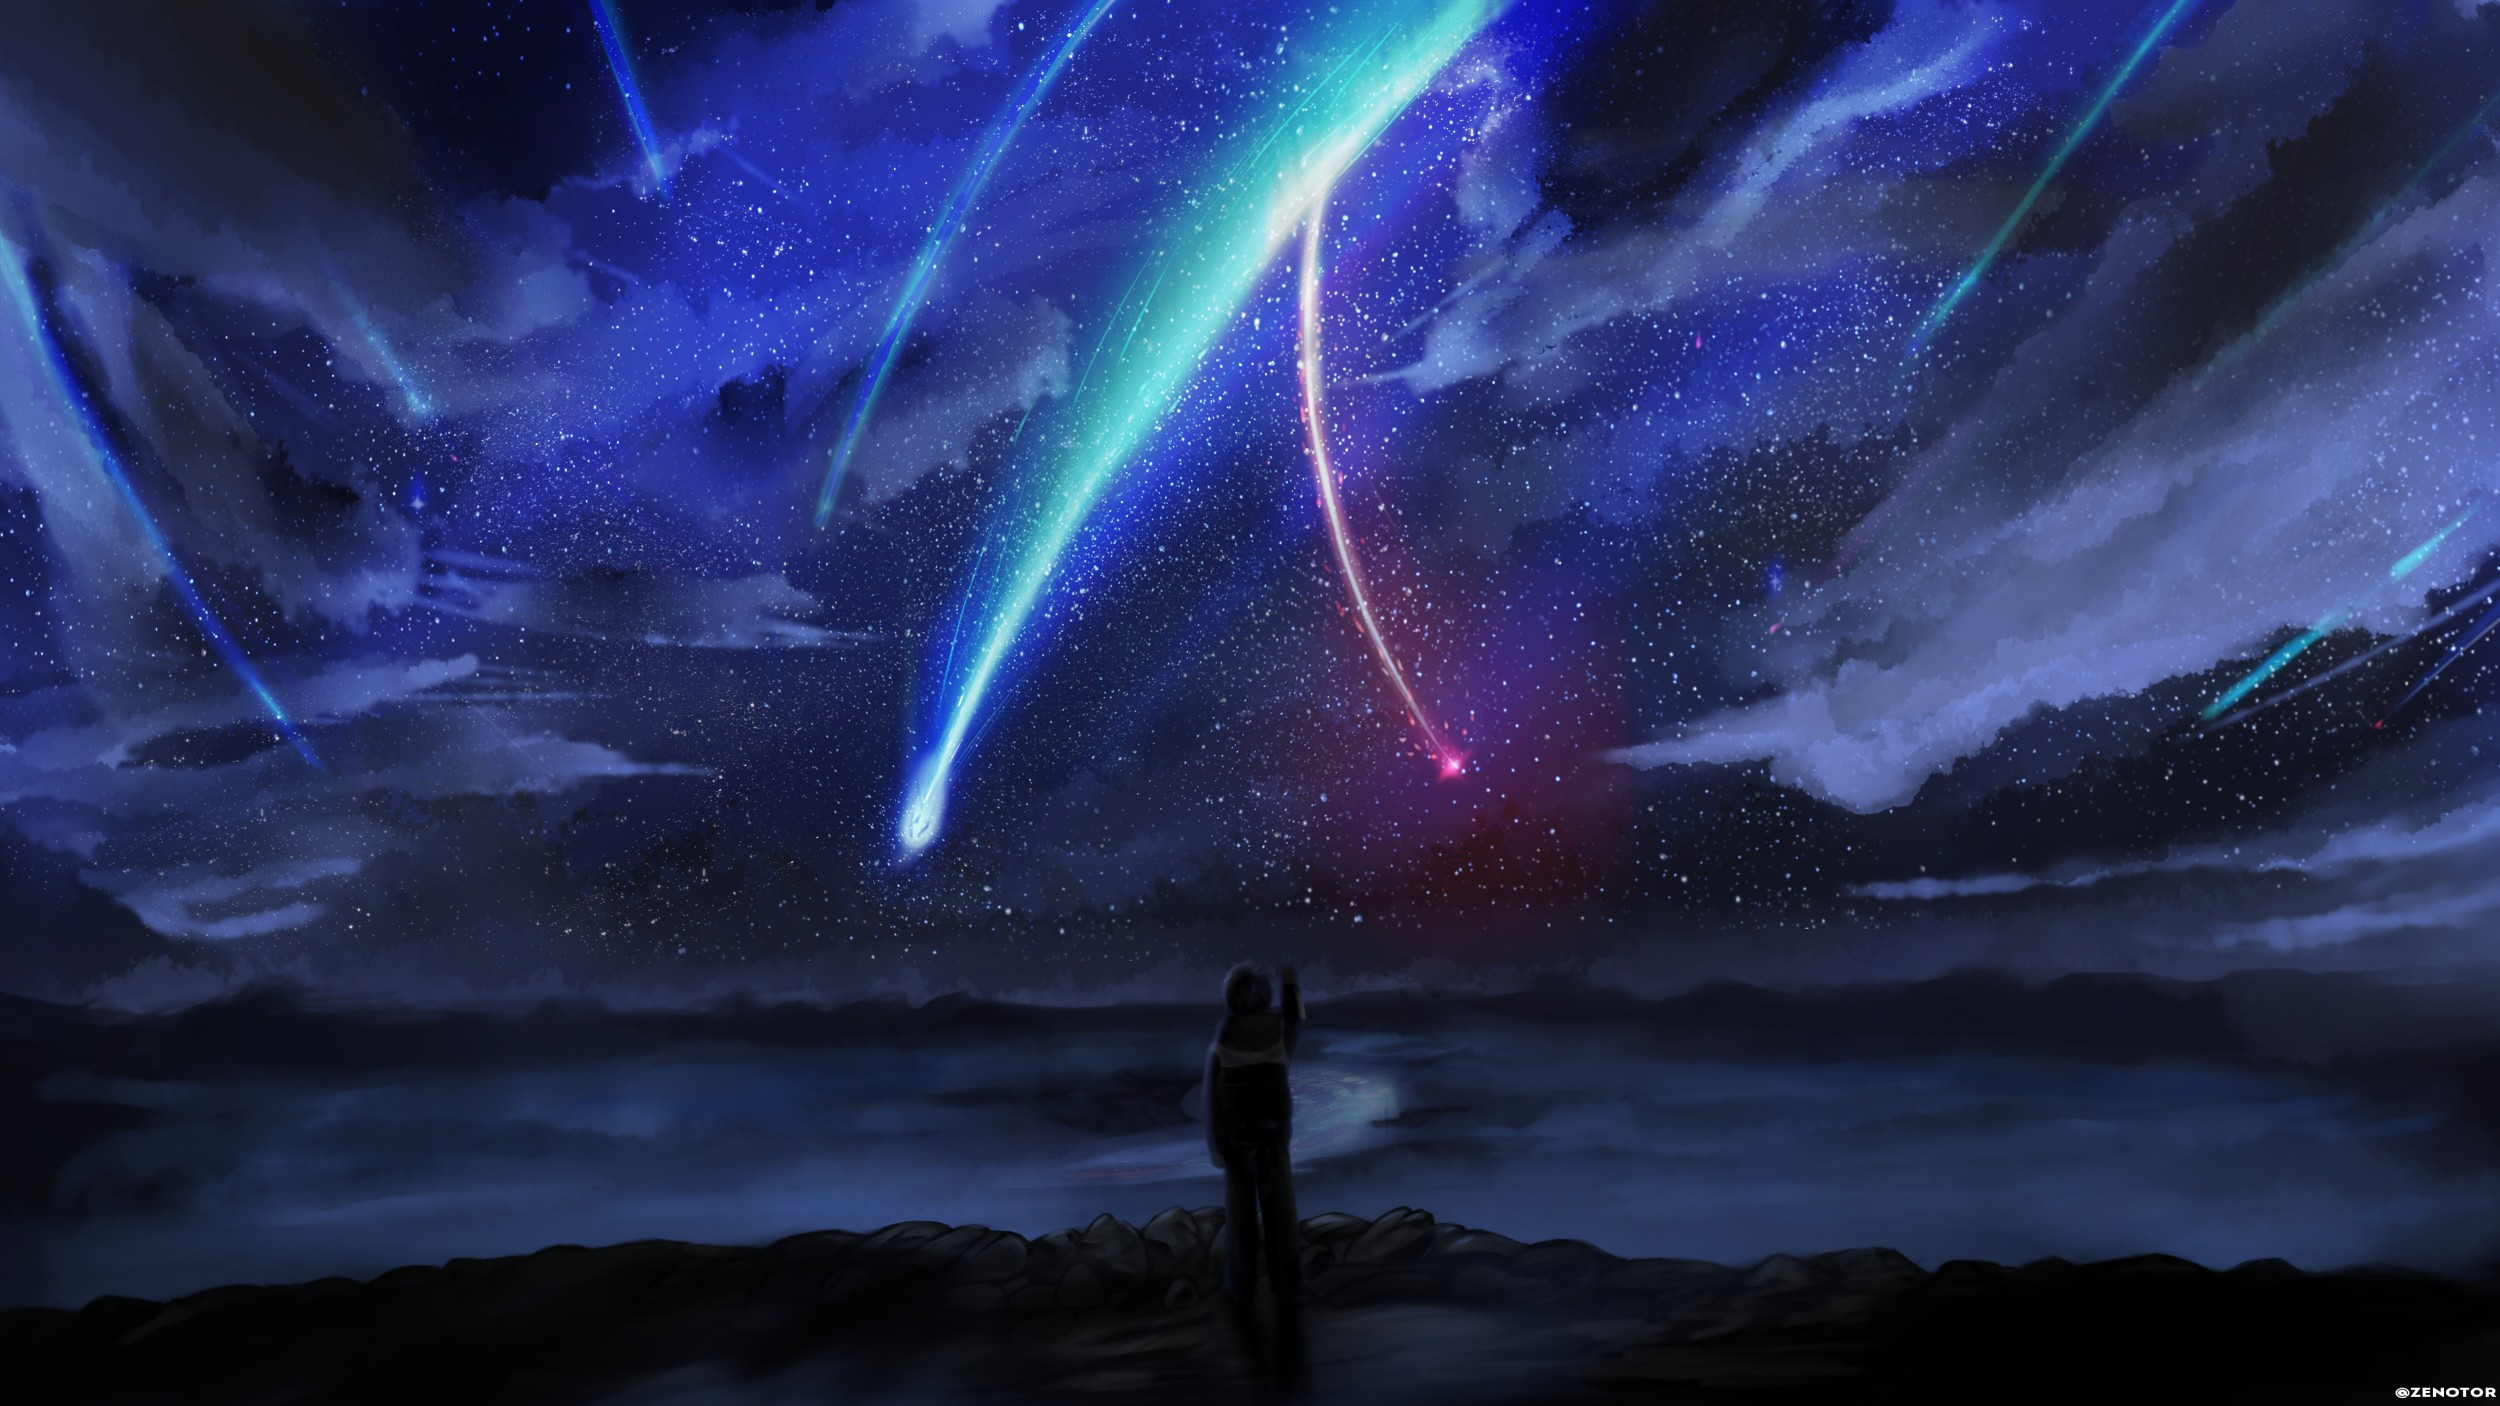 Your Name Anime Stars Sky Horizon Comet Anime Boy